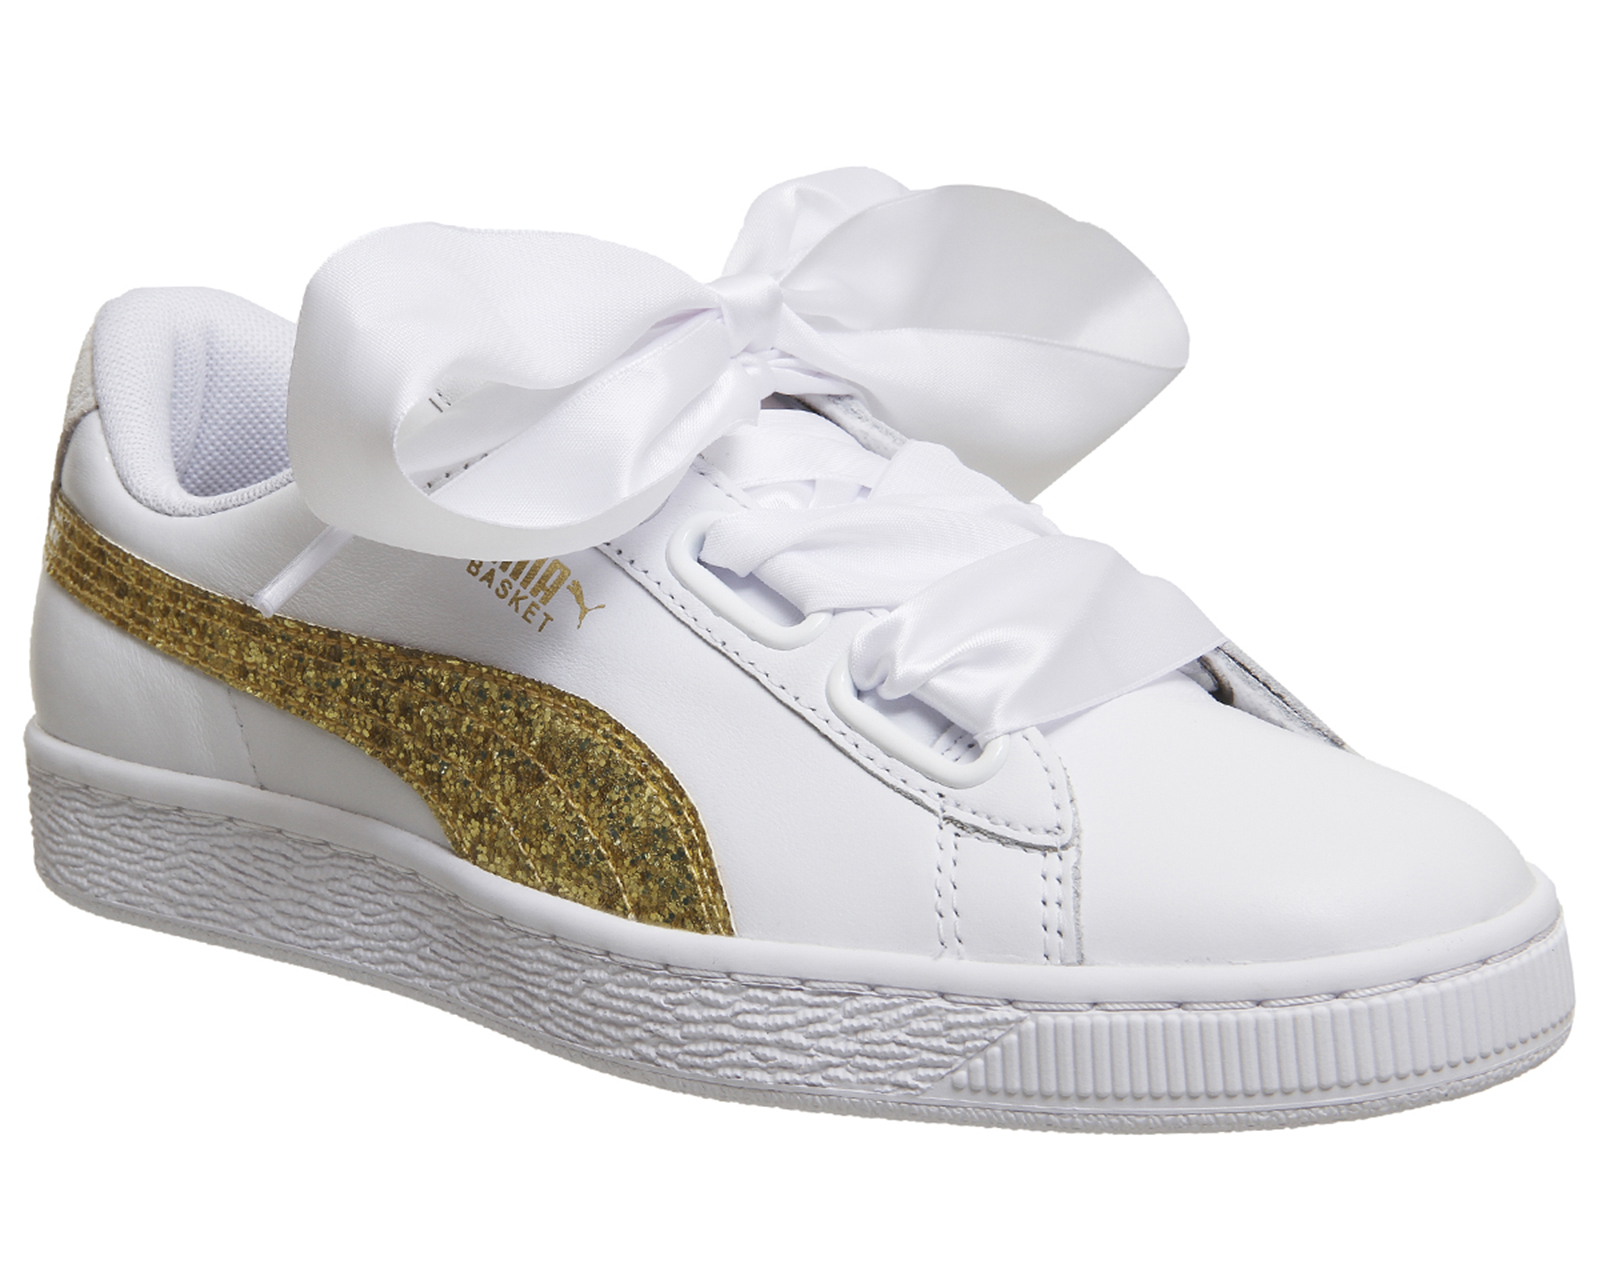 1e4013ddd0c Sentinel Womens Puma Basket Heart Trainers WHITE GOLD GLITTER Trainers Shoes